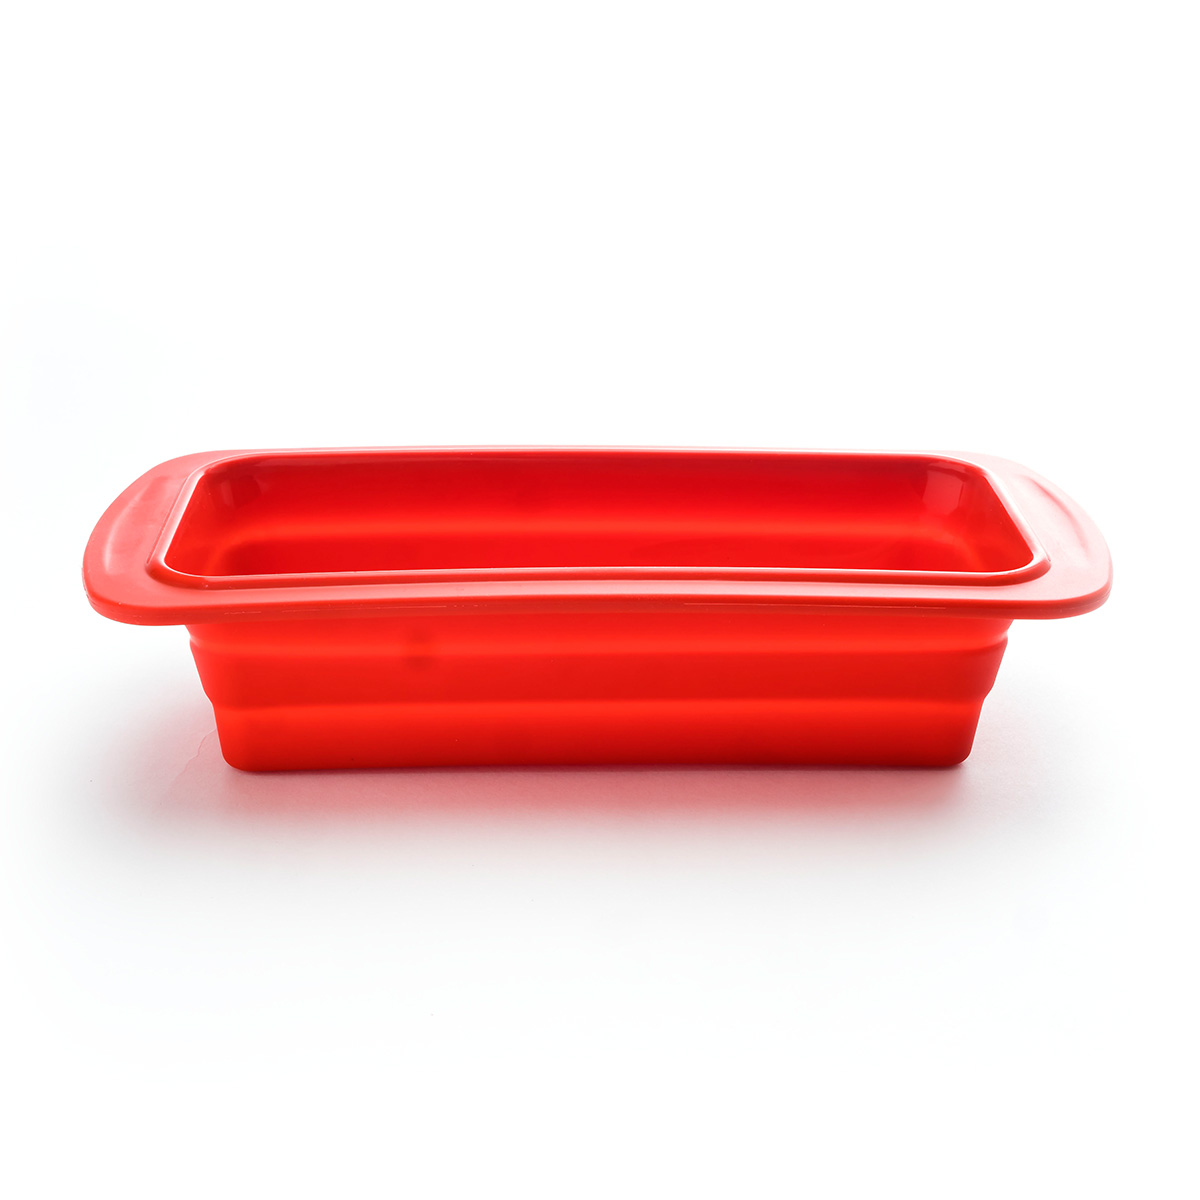 Cook-039-s-Companion-4-Piece-Collapsible-Silicone-Bakeware-Set thumbnail 16